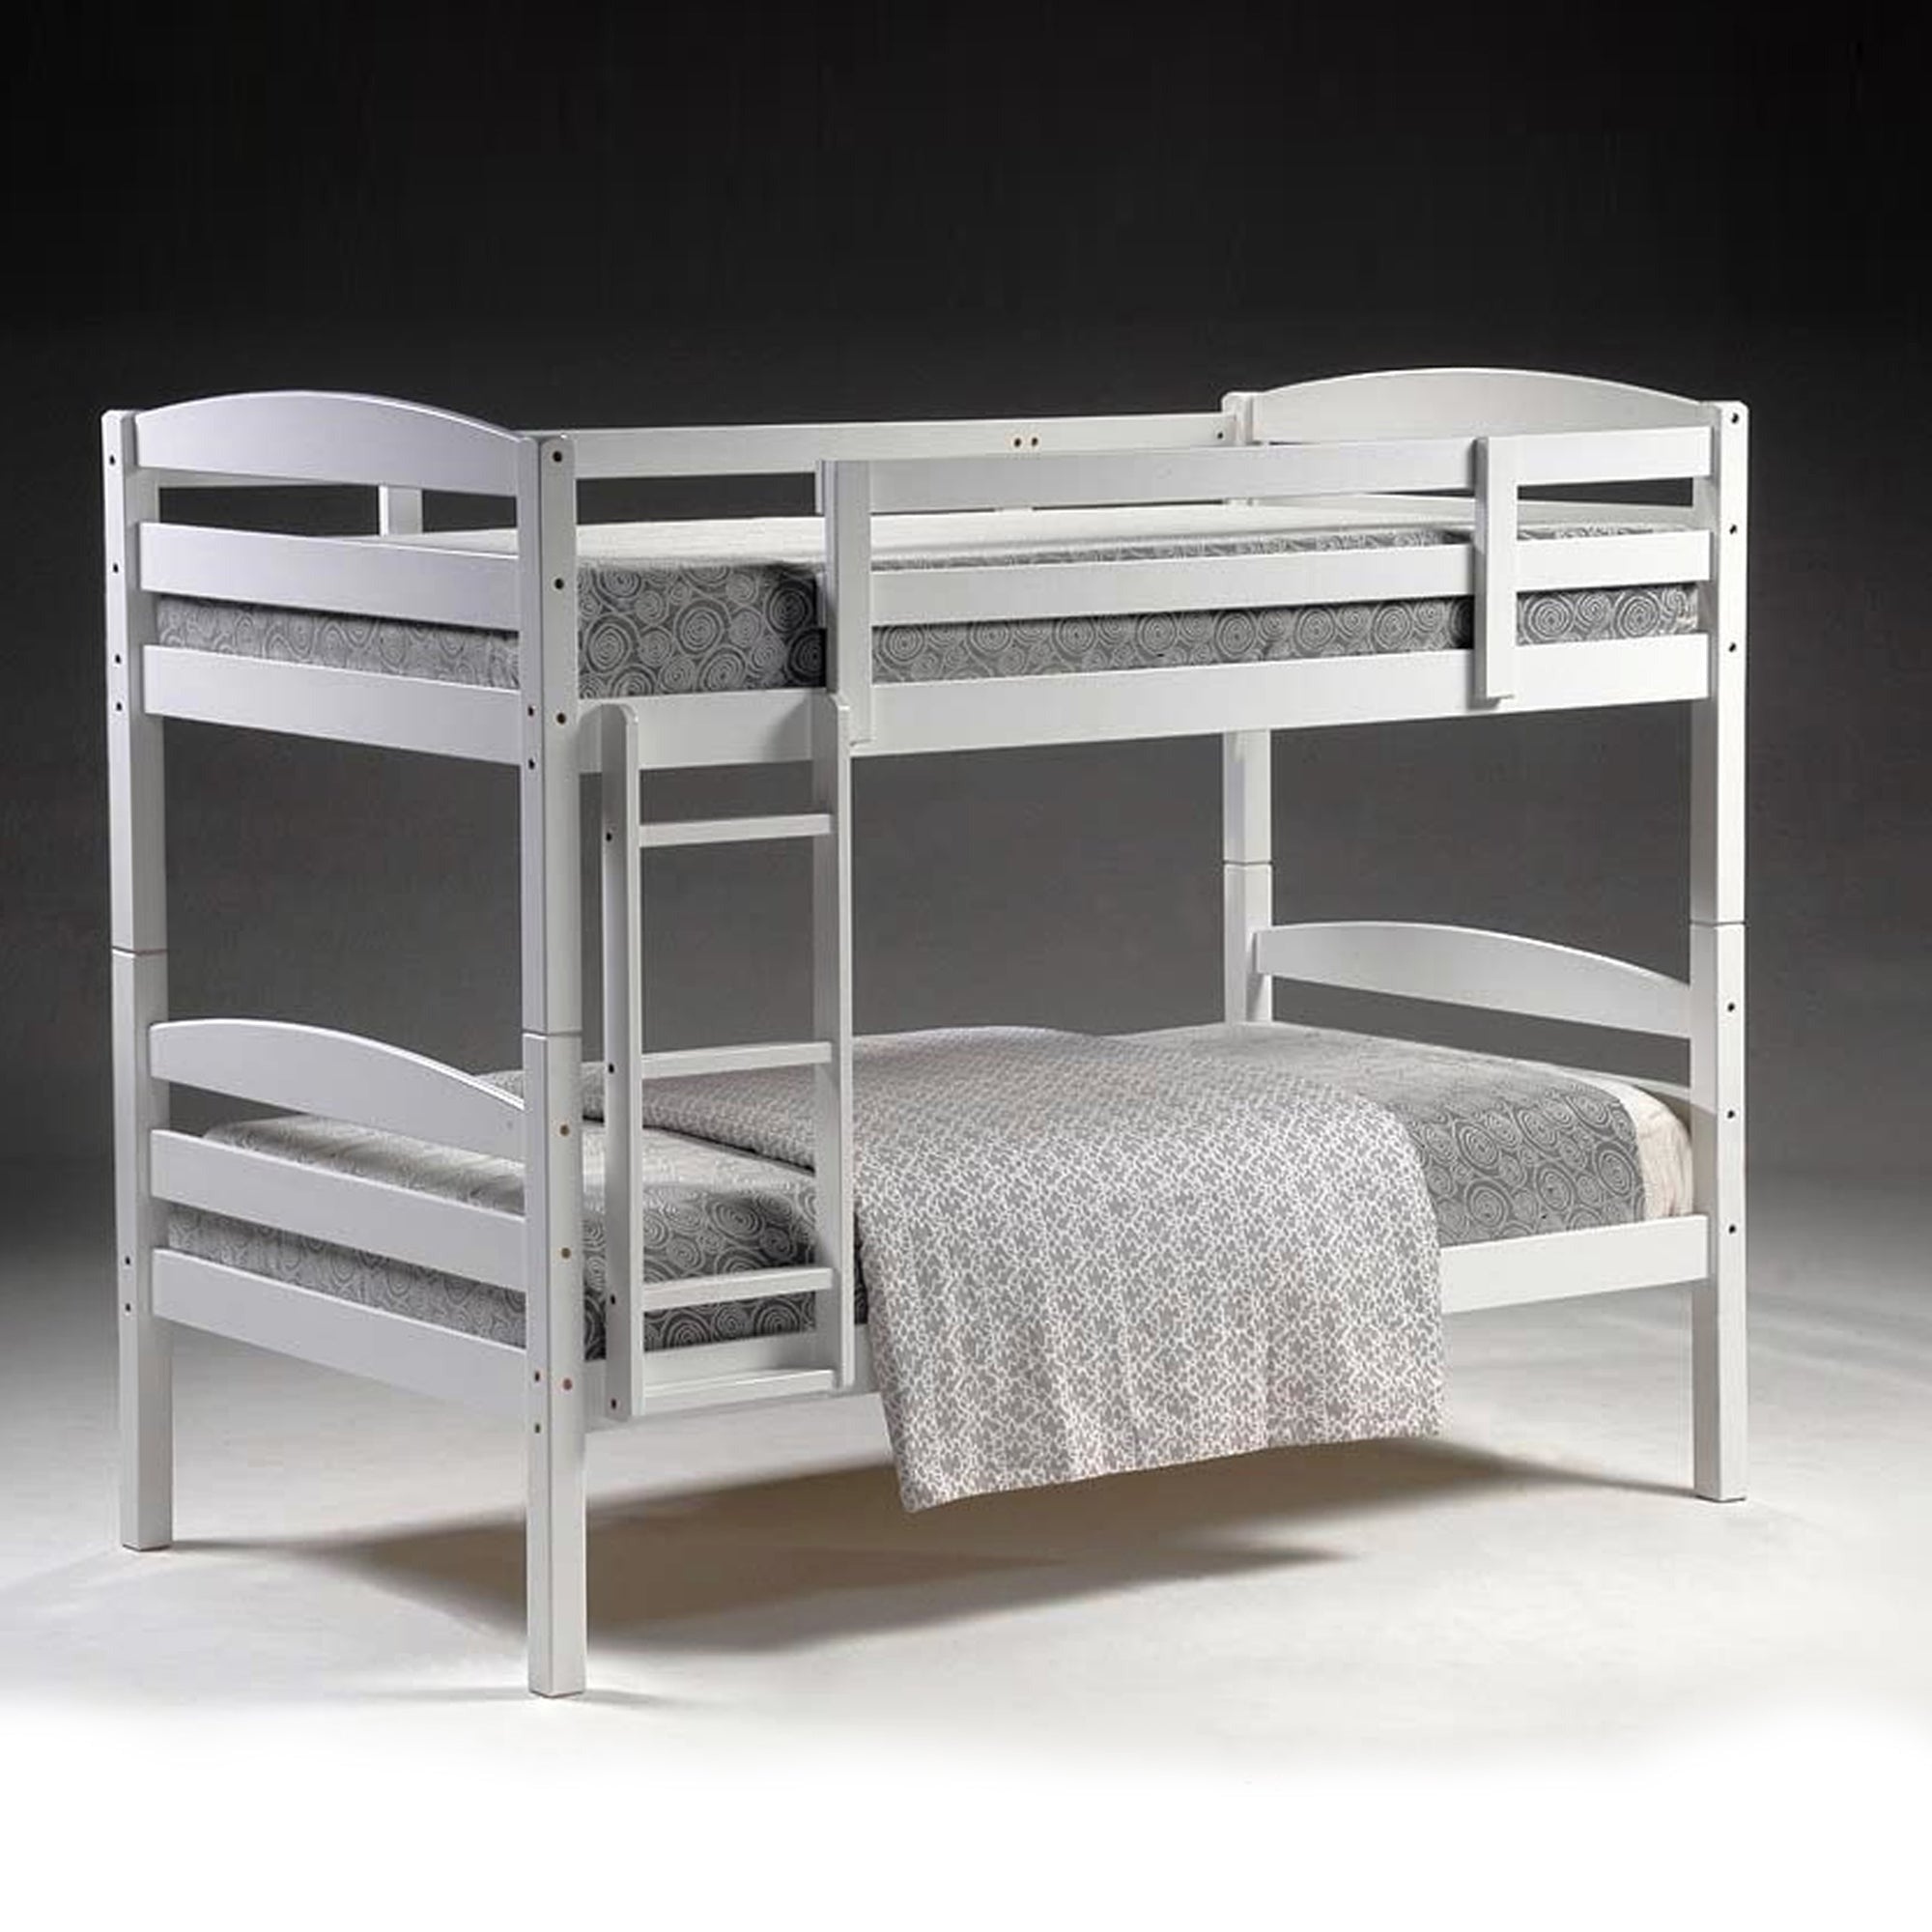 Charlie Bunk Bed Frame The Furniture Store The Bed Shop